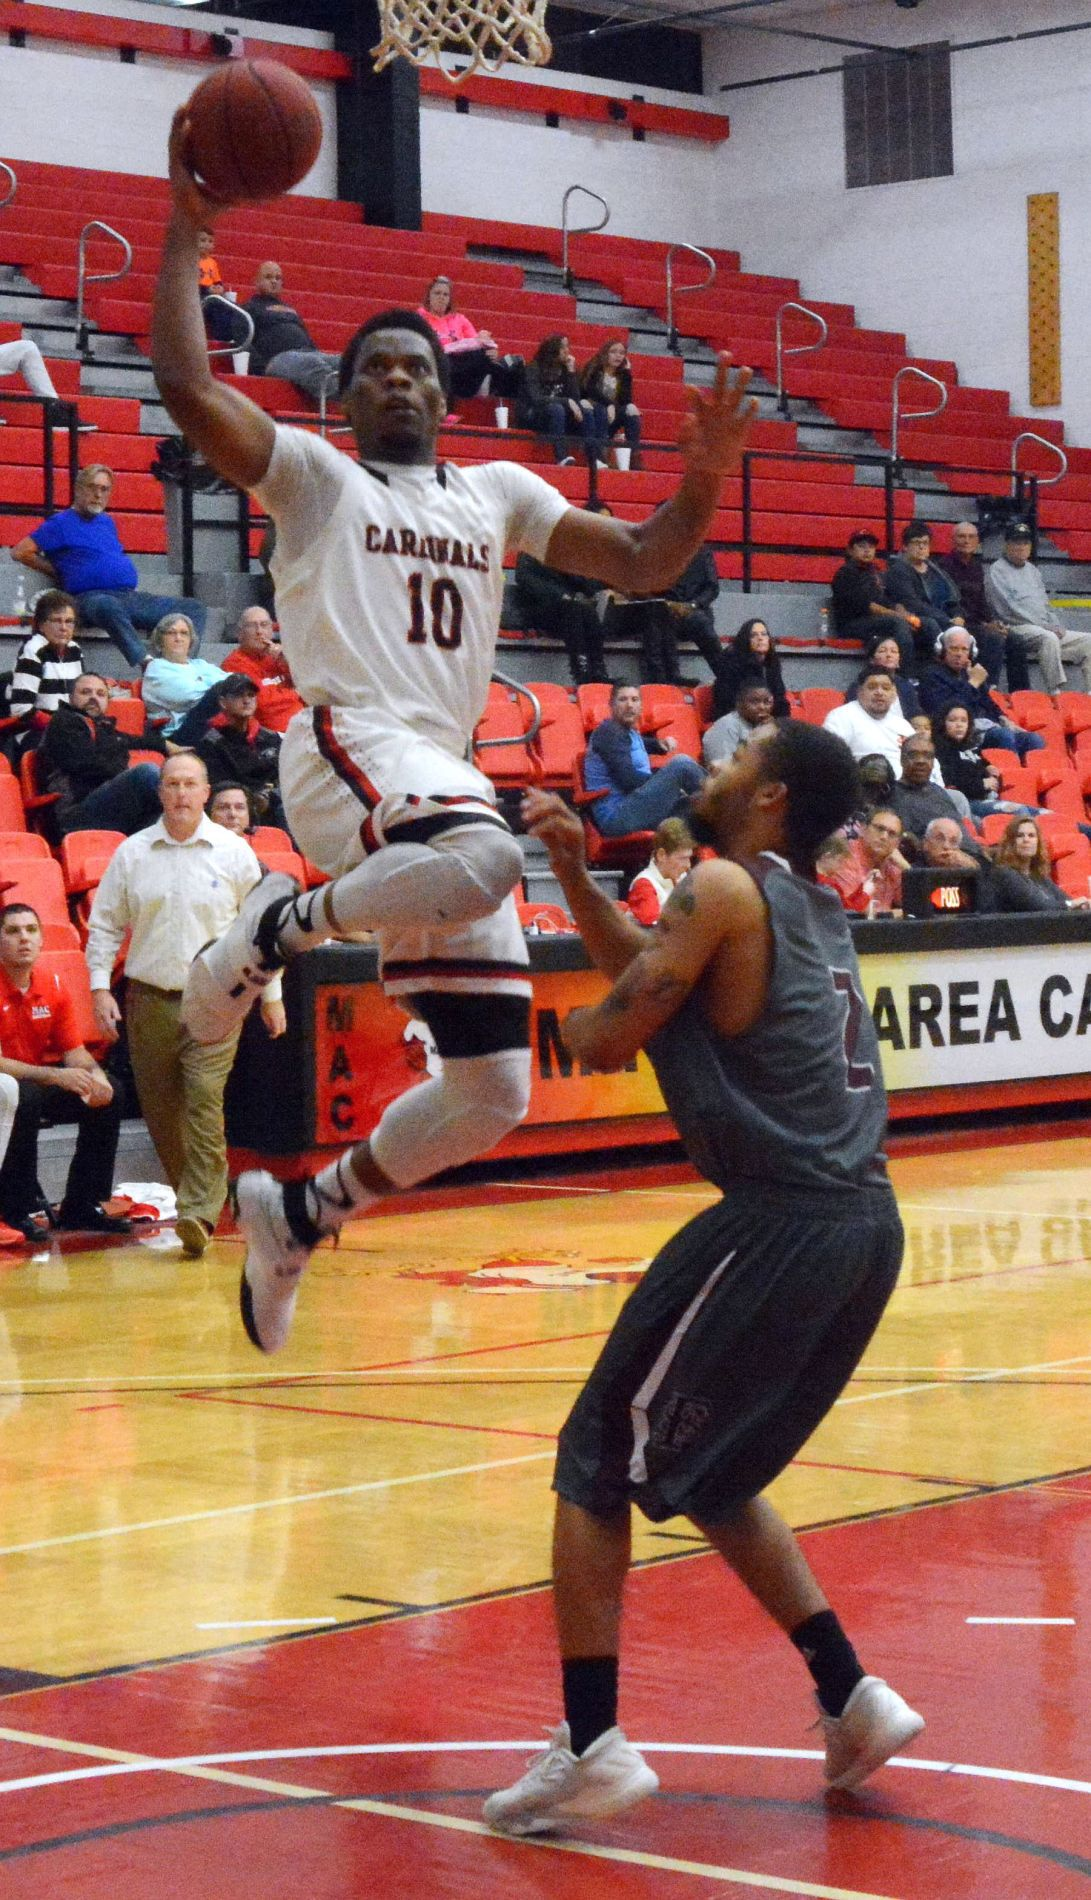 MAC thrashes Fort Scott to extend streak | Mens-basketball ...